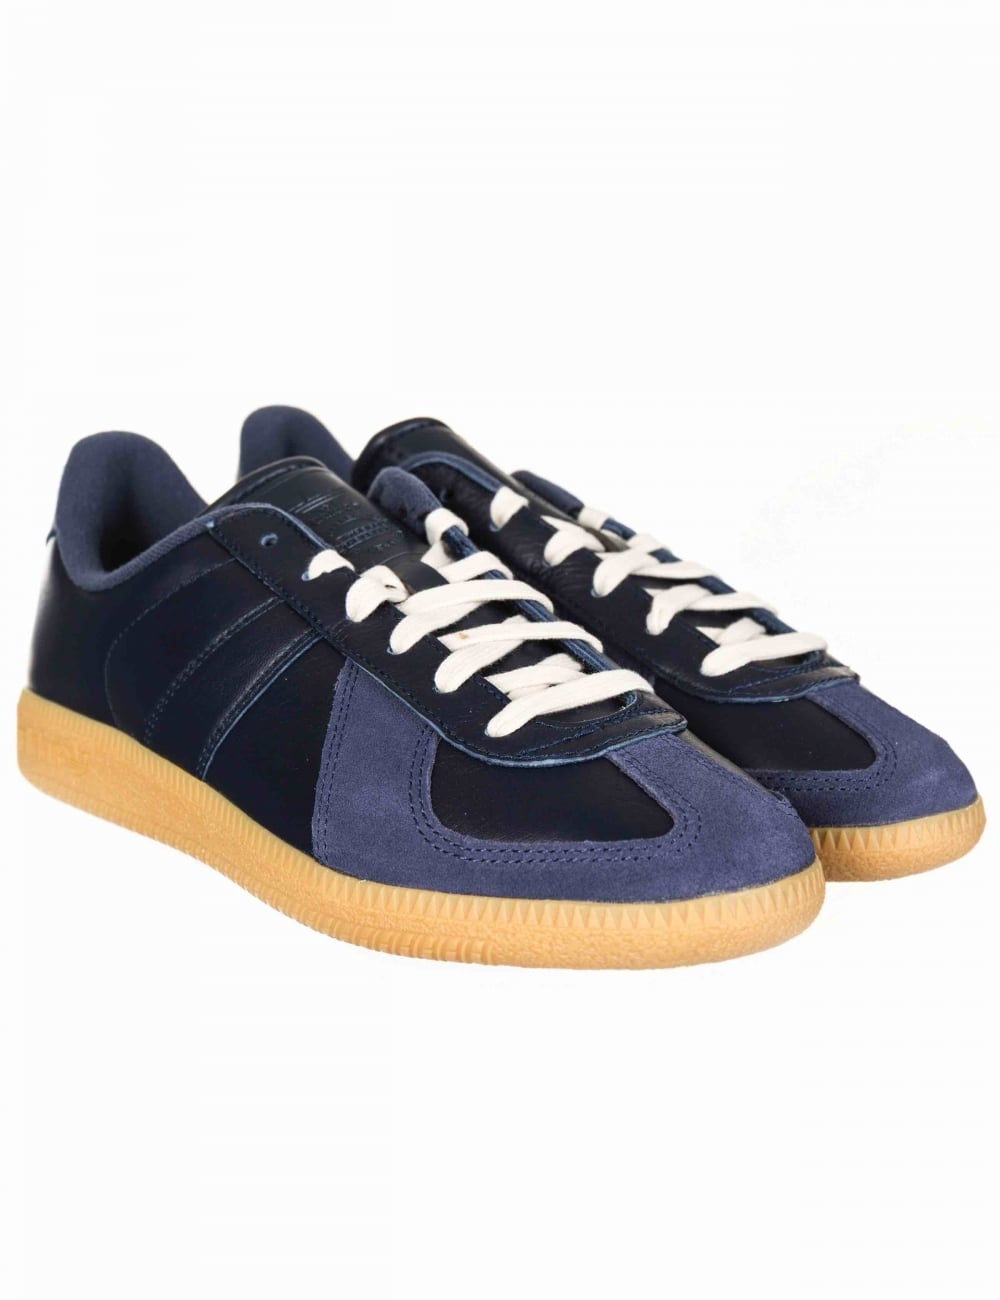 newest 6b8a5 062a5 BW Army Shoes - Collegiate Navy